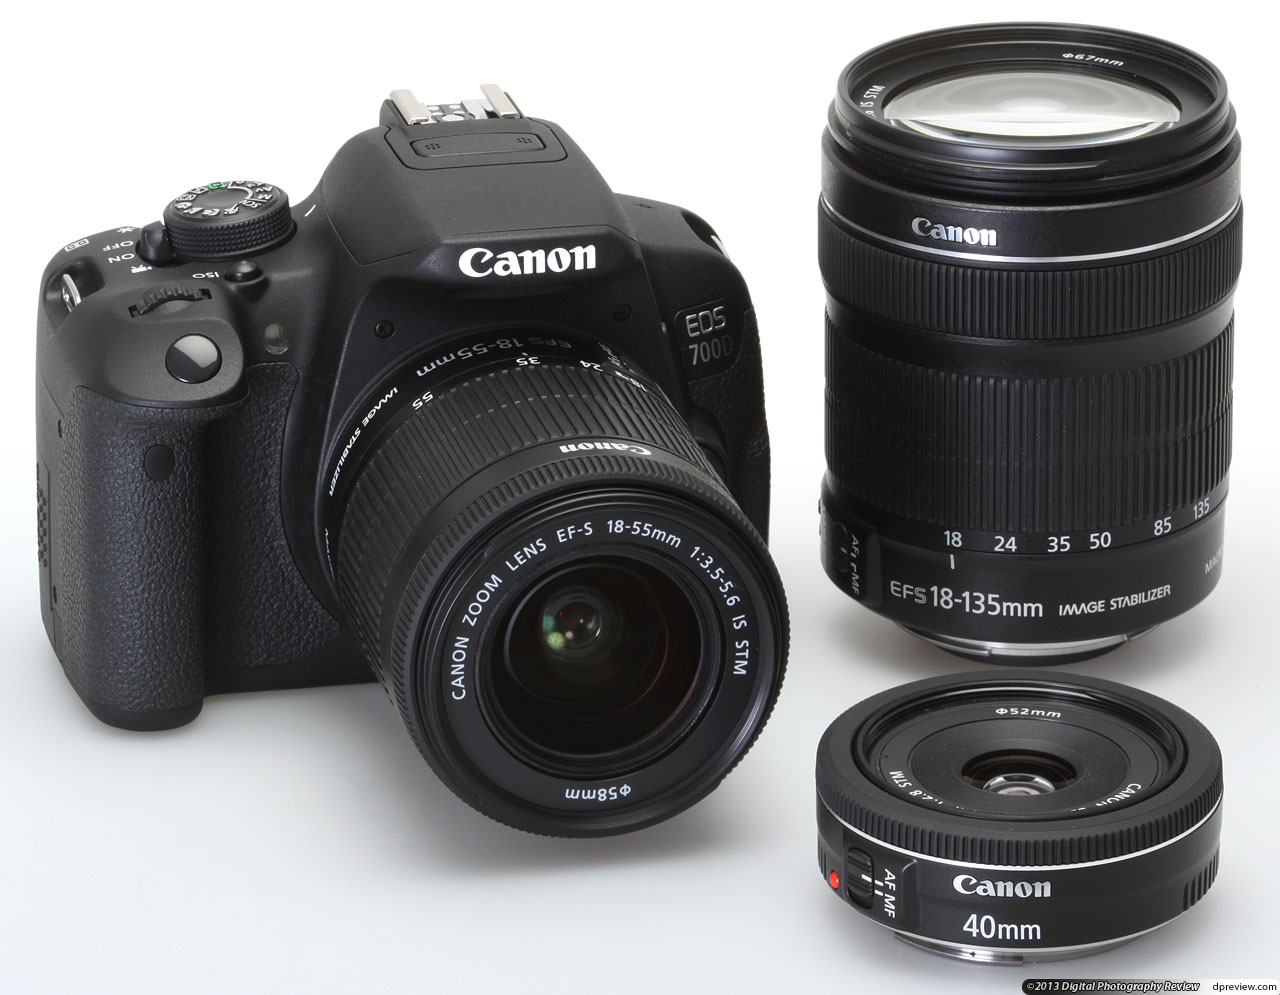 Camera Canon Eos 700d Dslr Camera Review canon eos 700drebel t5i in depth review digital photography the 700ds hybrid af system is designed to work optimally with canons three lens stm lineup which consists of an 18 55